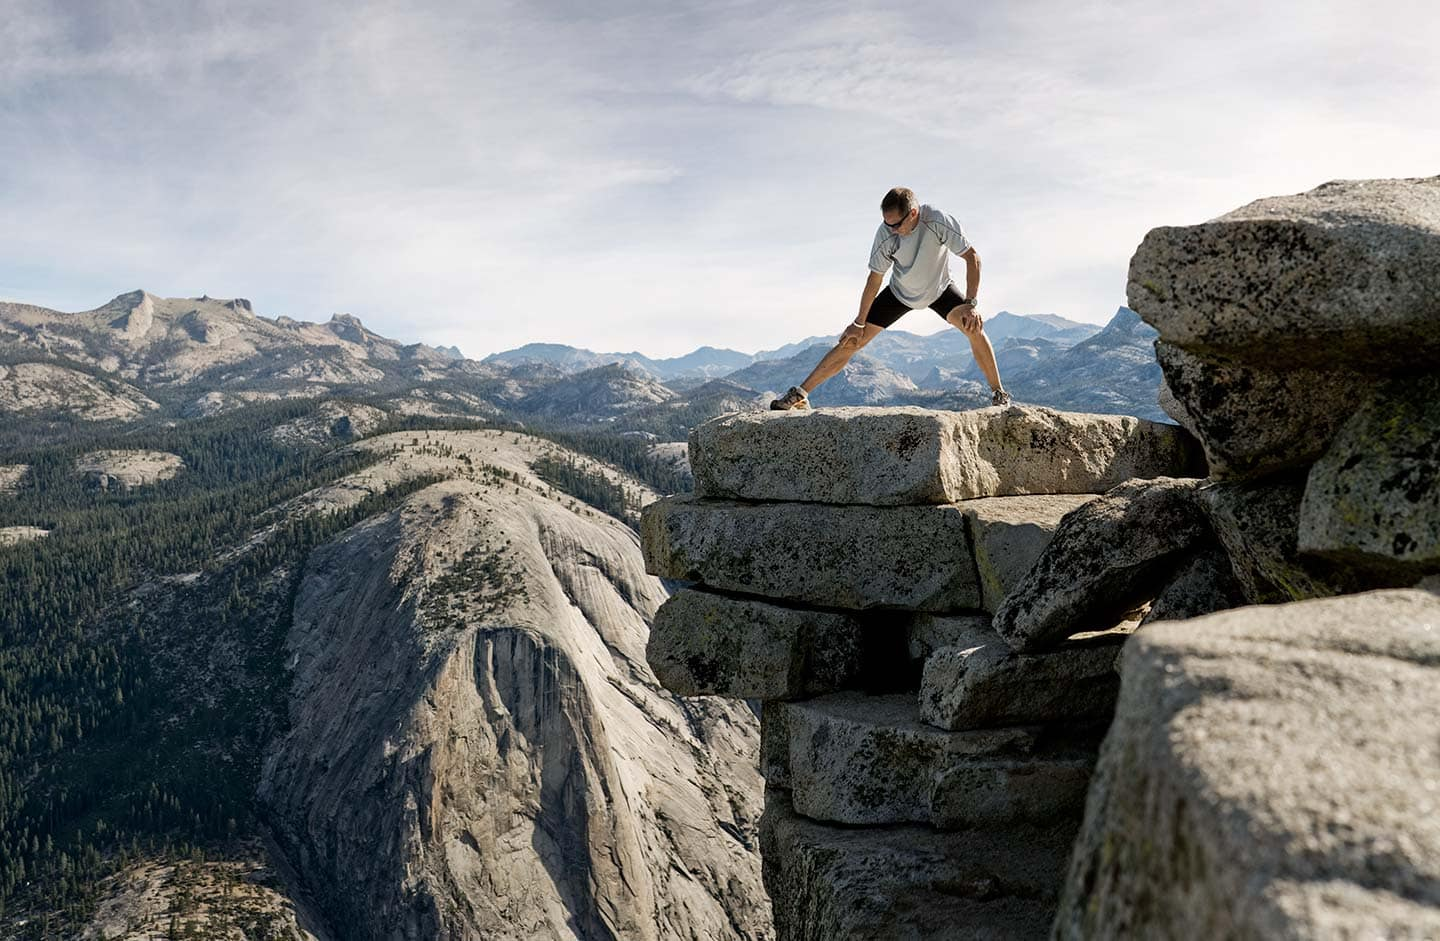 Runner in Black and White Athletic Apparel Stretching Over Rocks Against Background of Bright Skies